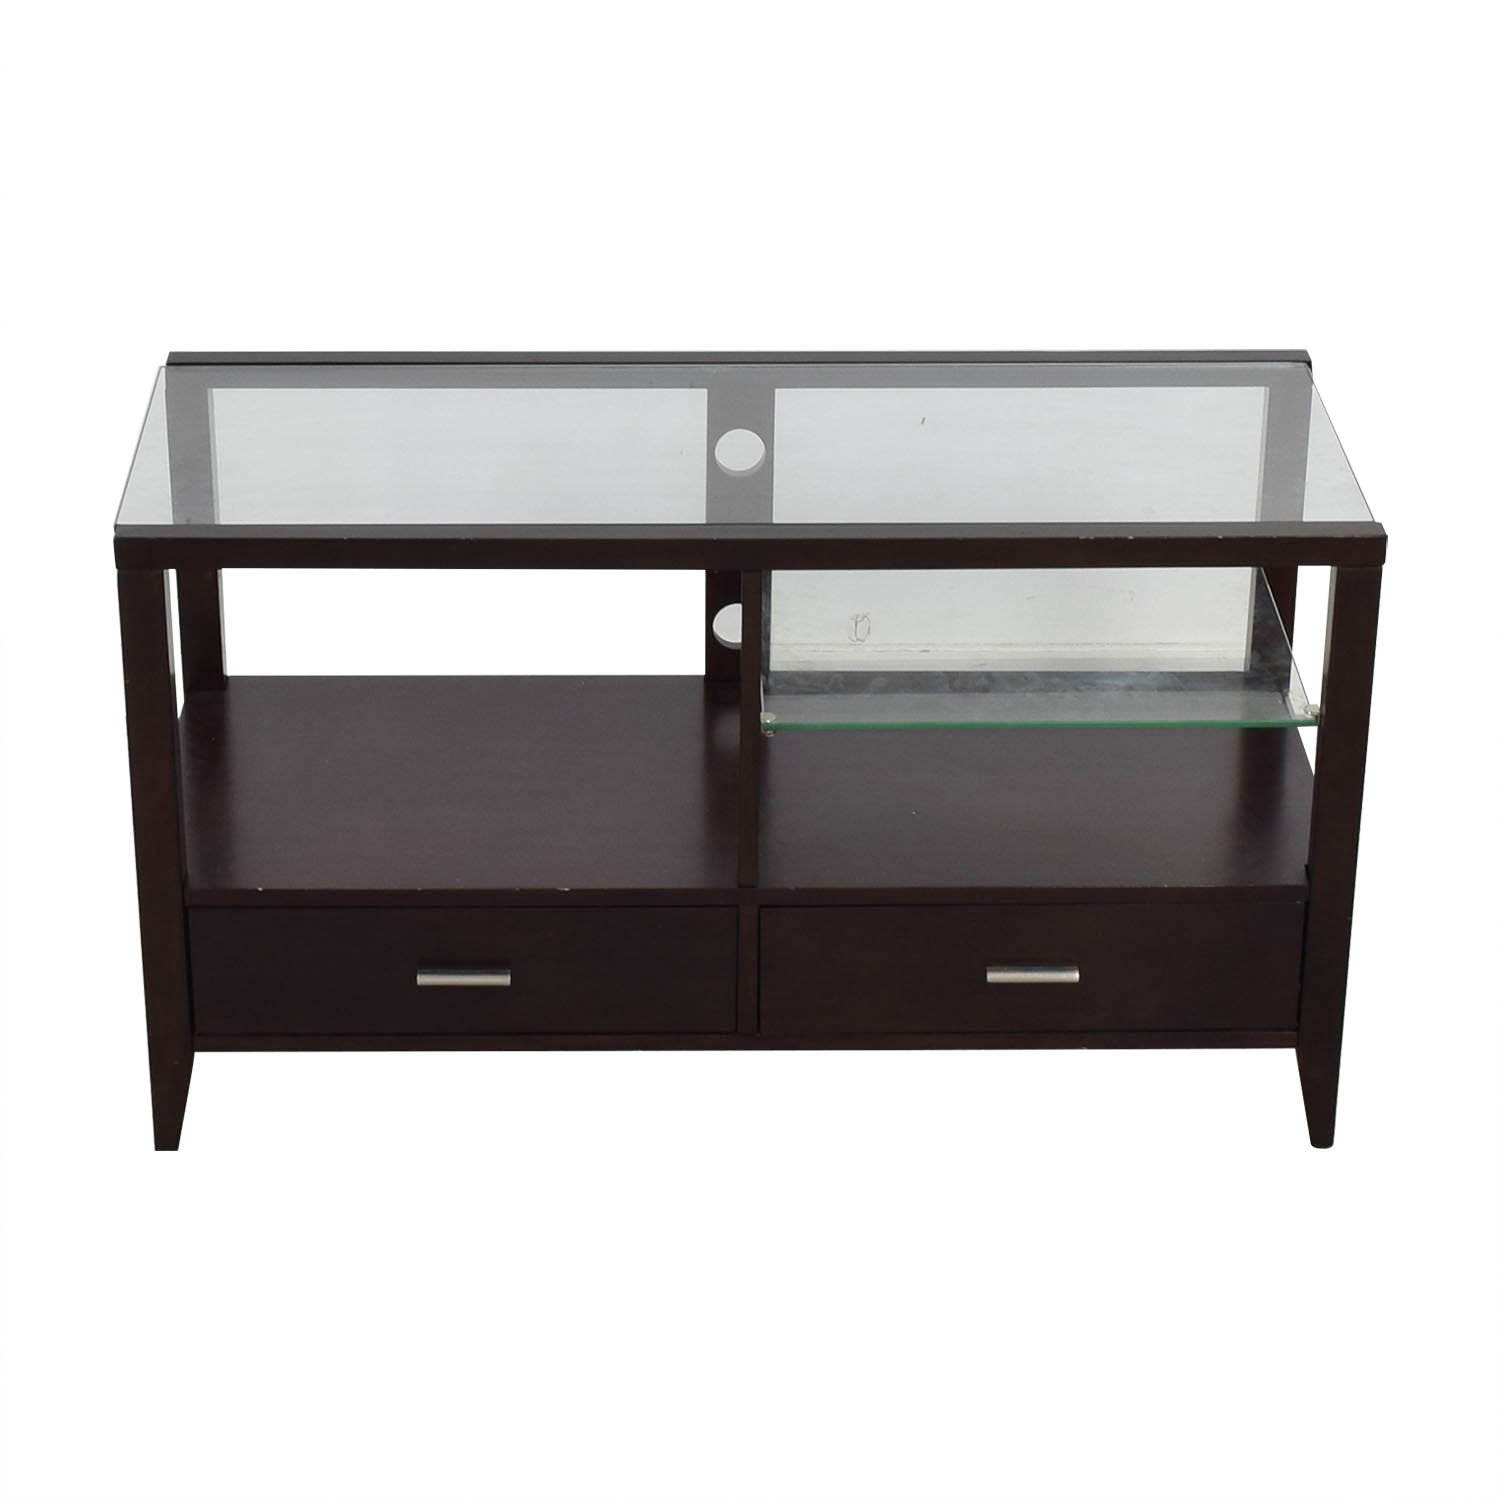 Belfort Furniture Belfort Furniture  Wood and Glass Entertainment Console second hand